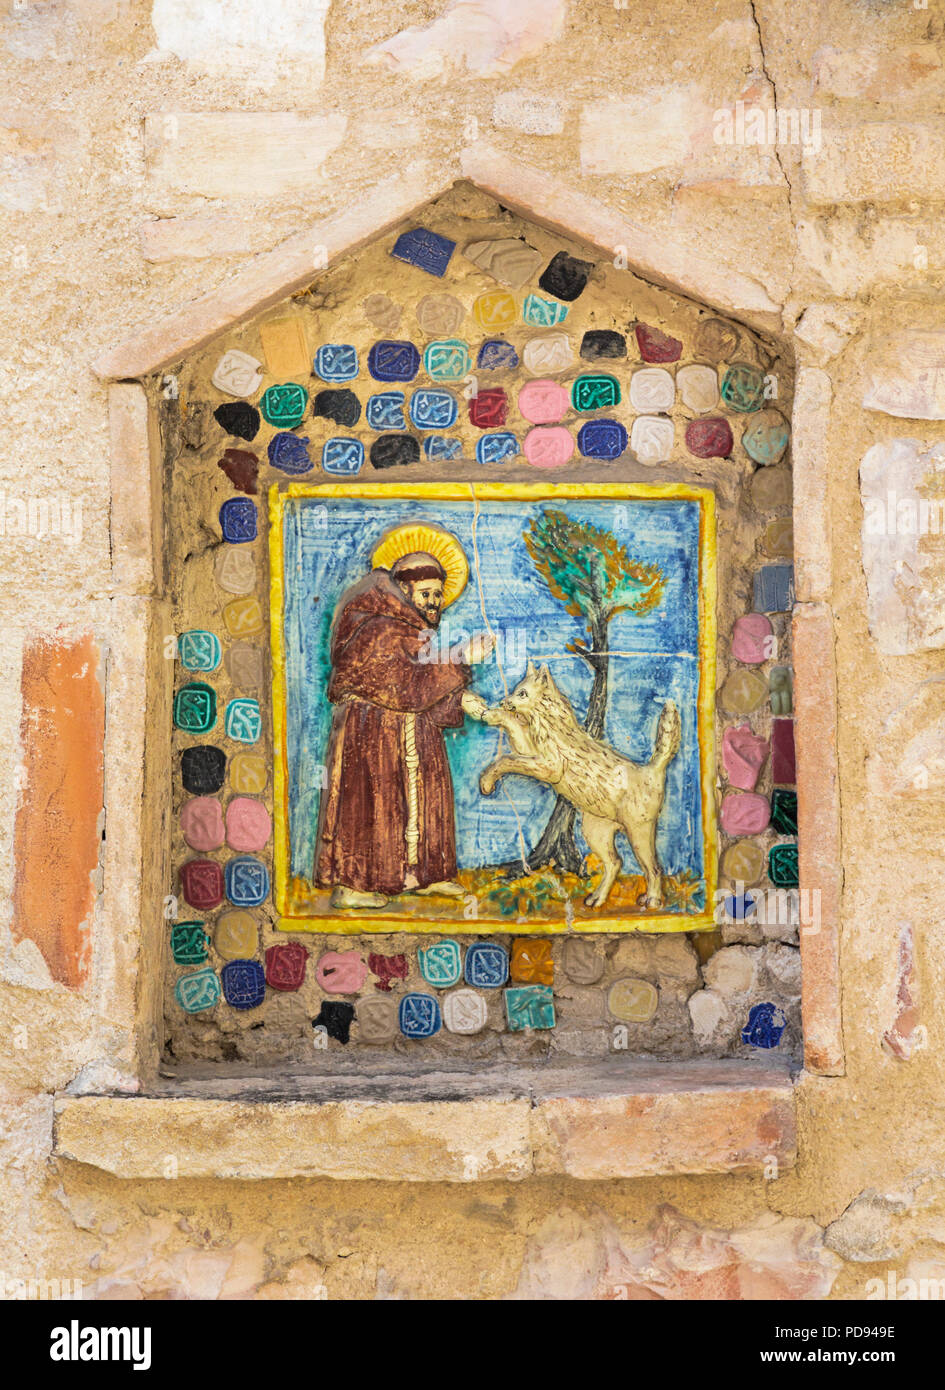 Assisi, Perugia Province, Umbria, Italy.  Ceramic tile of St. Francis of Assisi blessing a dog or a wolf. - Stock Image